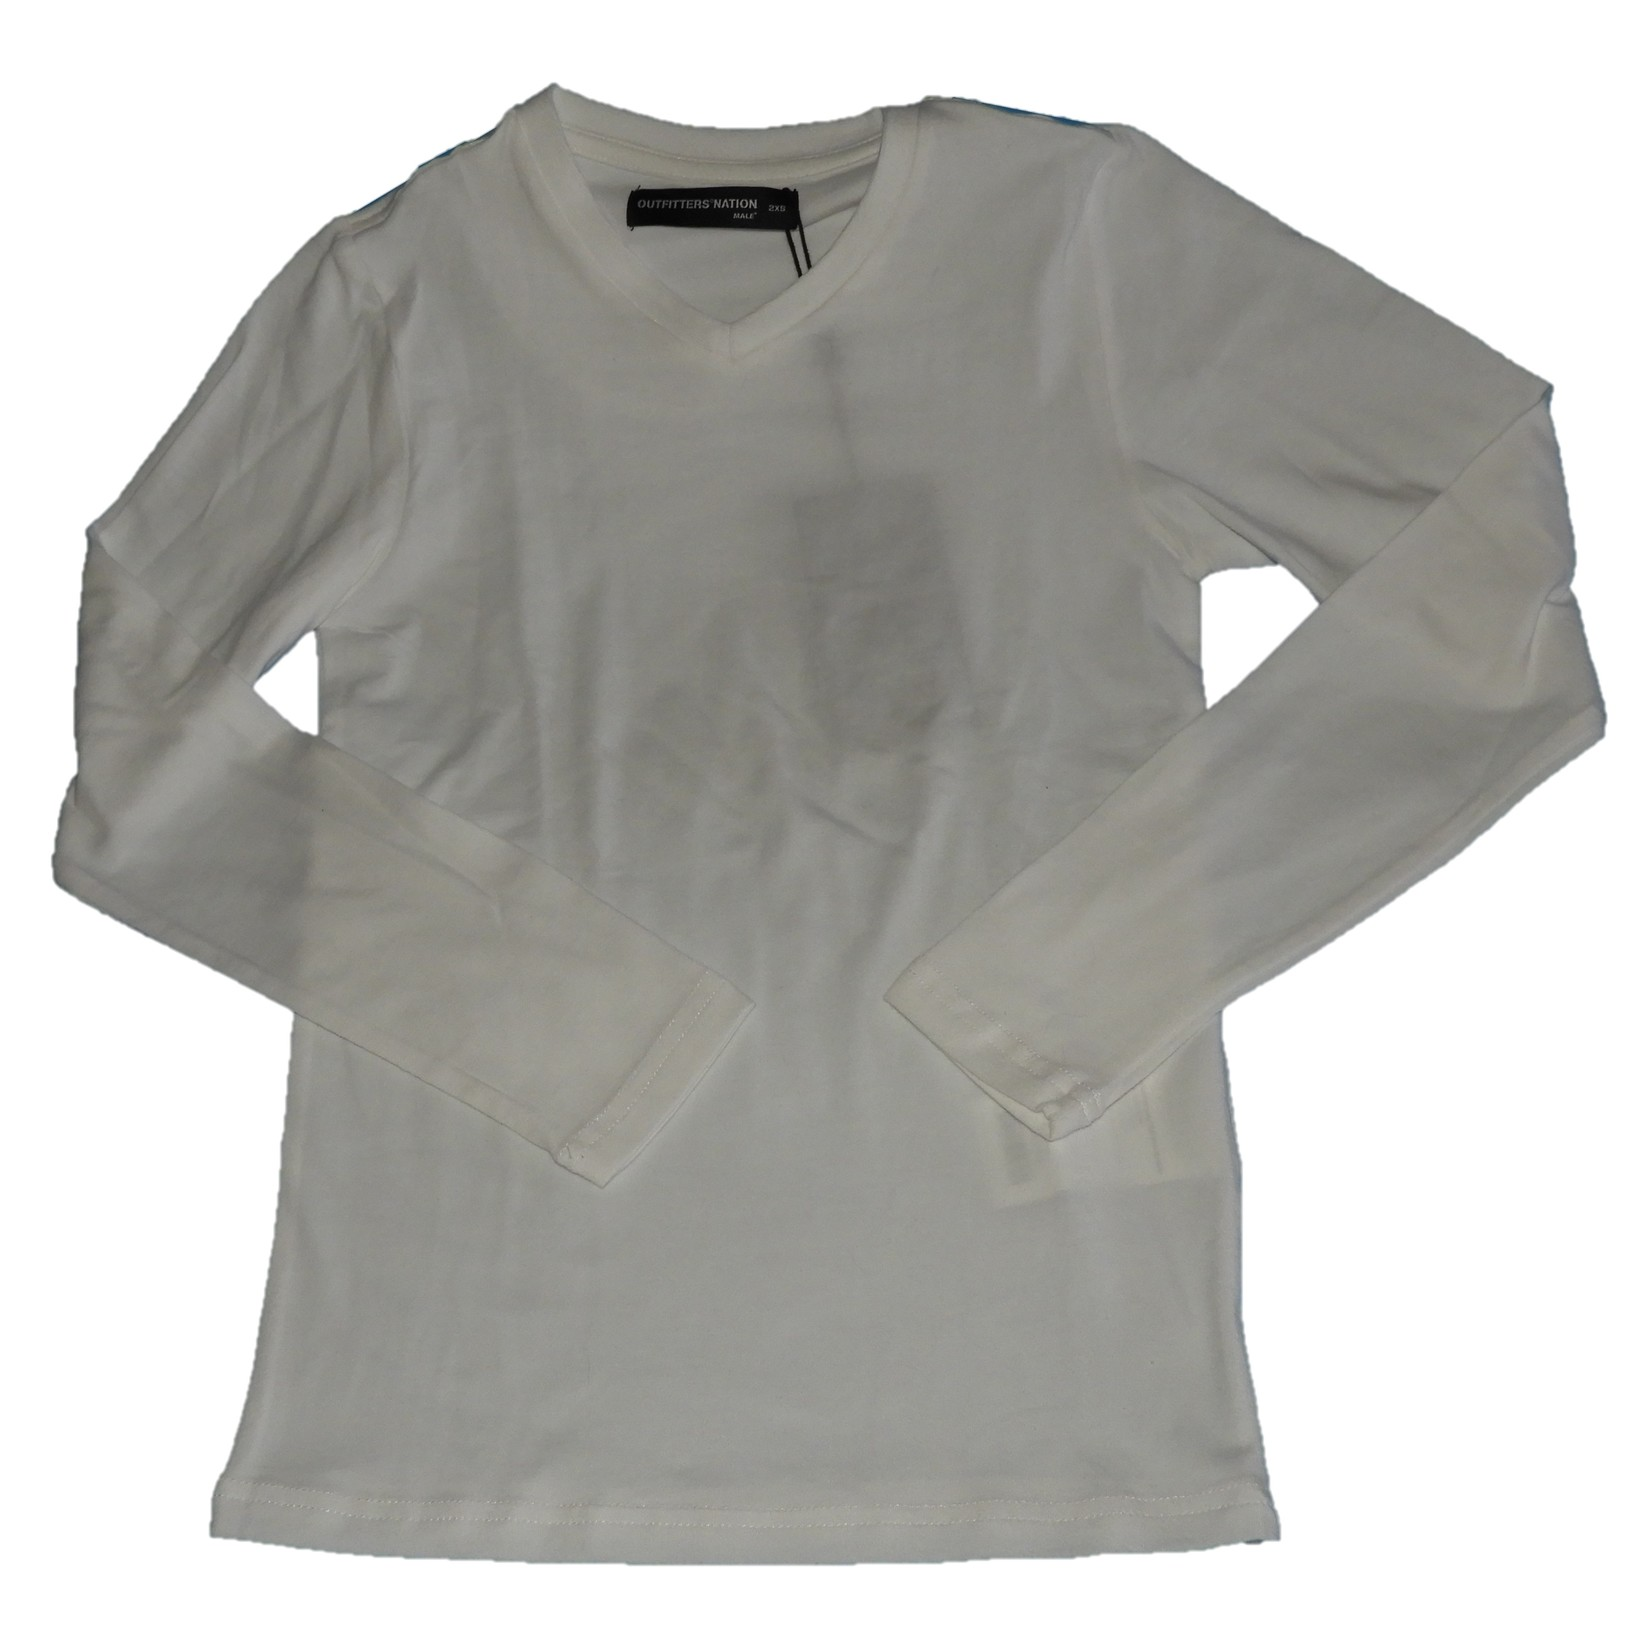 Outfitters Nation longsleeve maat 140 + 152